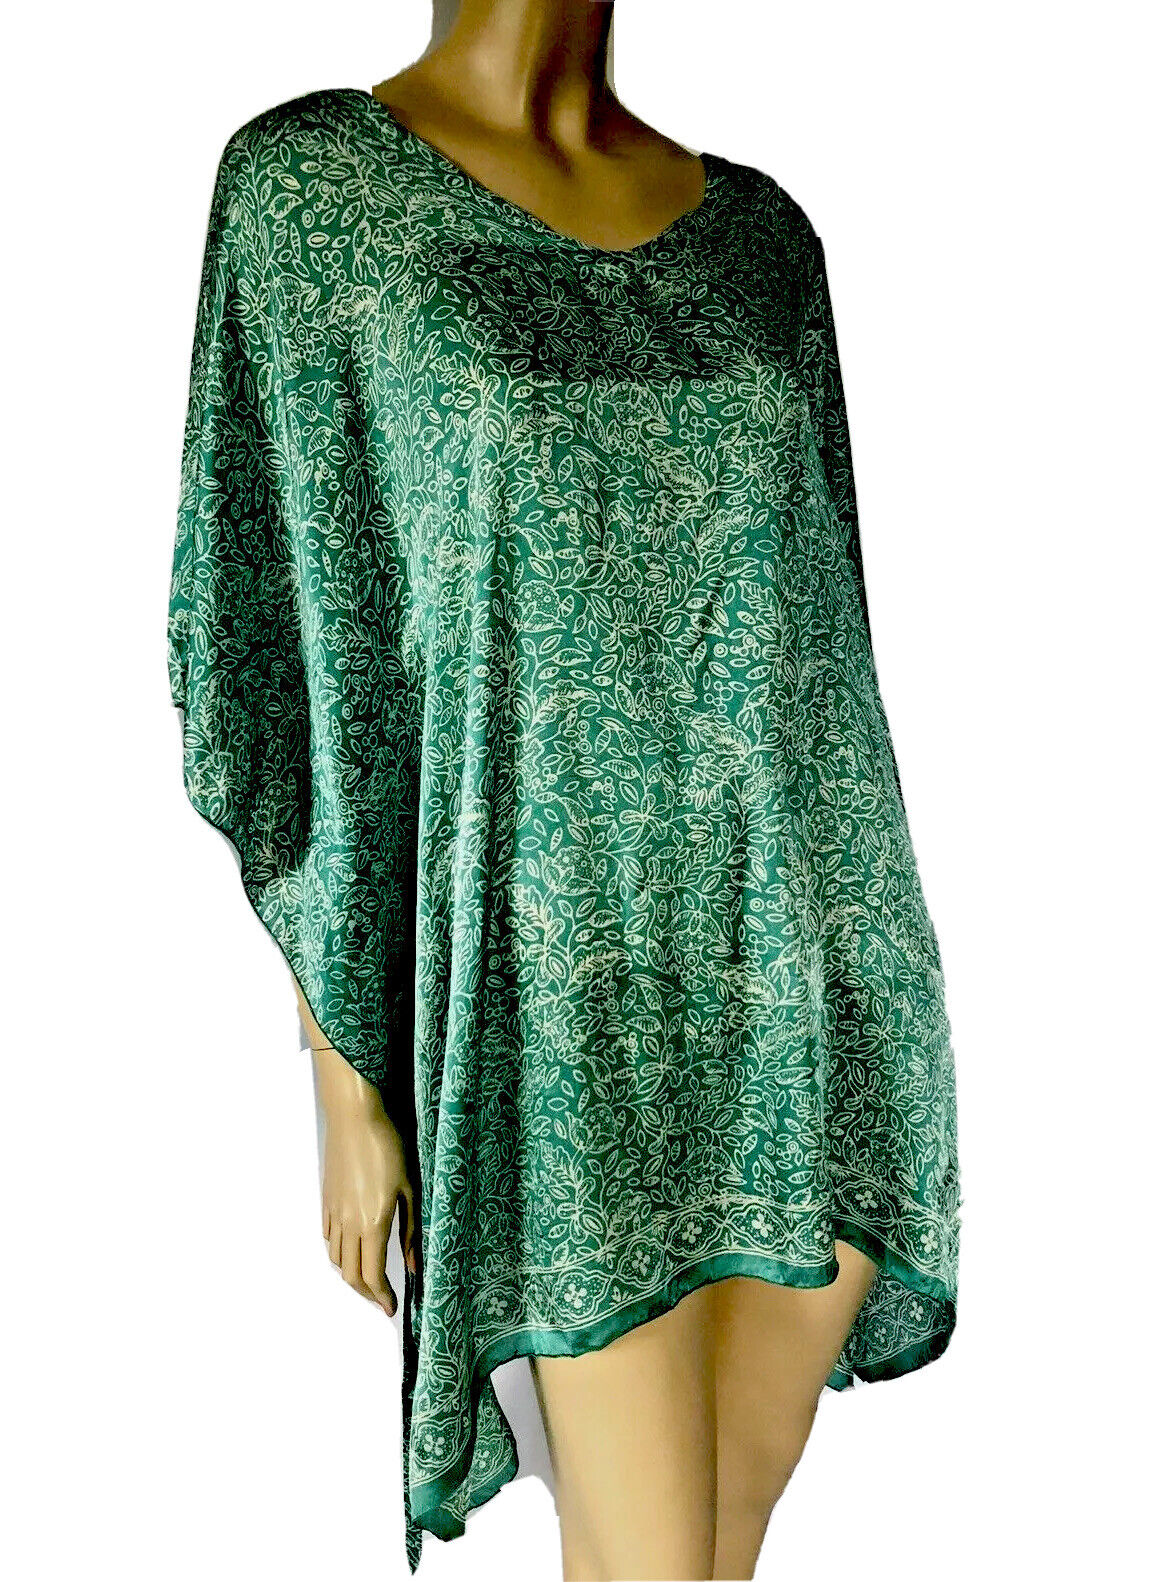 HAND MADE IN INDONESIA GREEN FLORAL PRINT SILK CA… - image 8